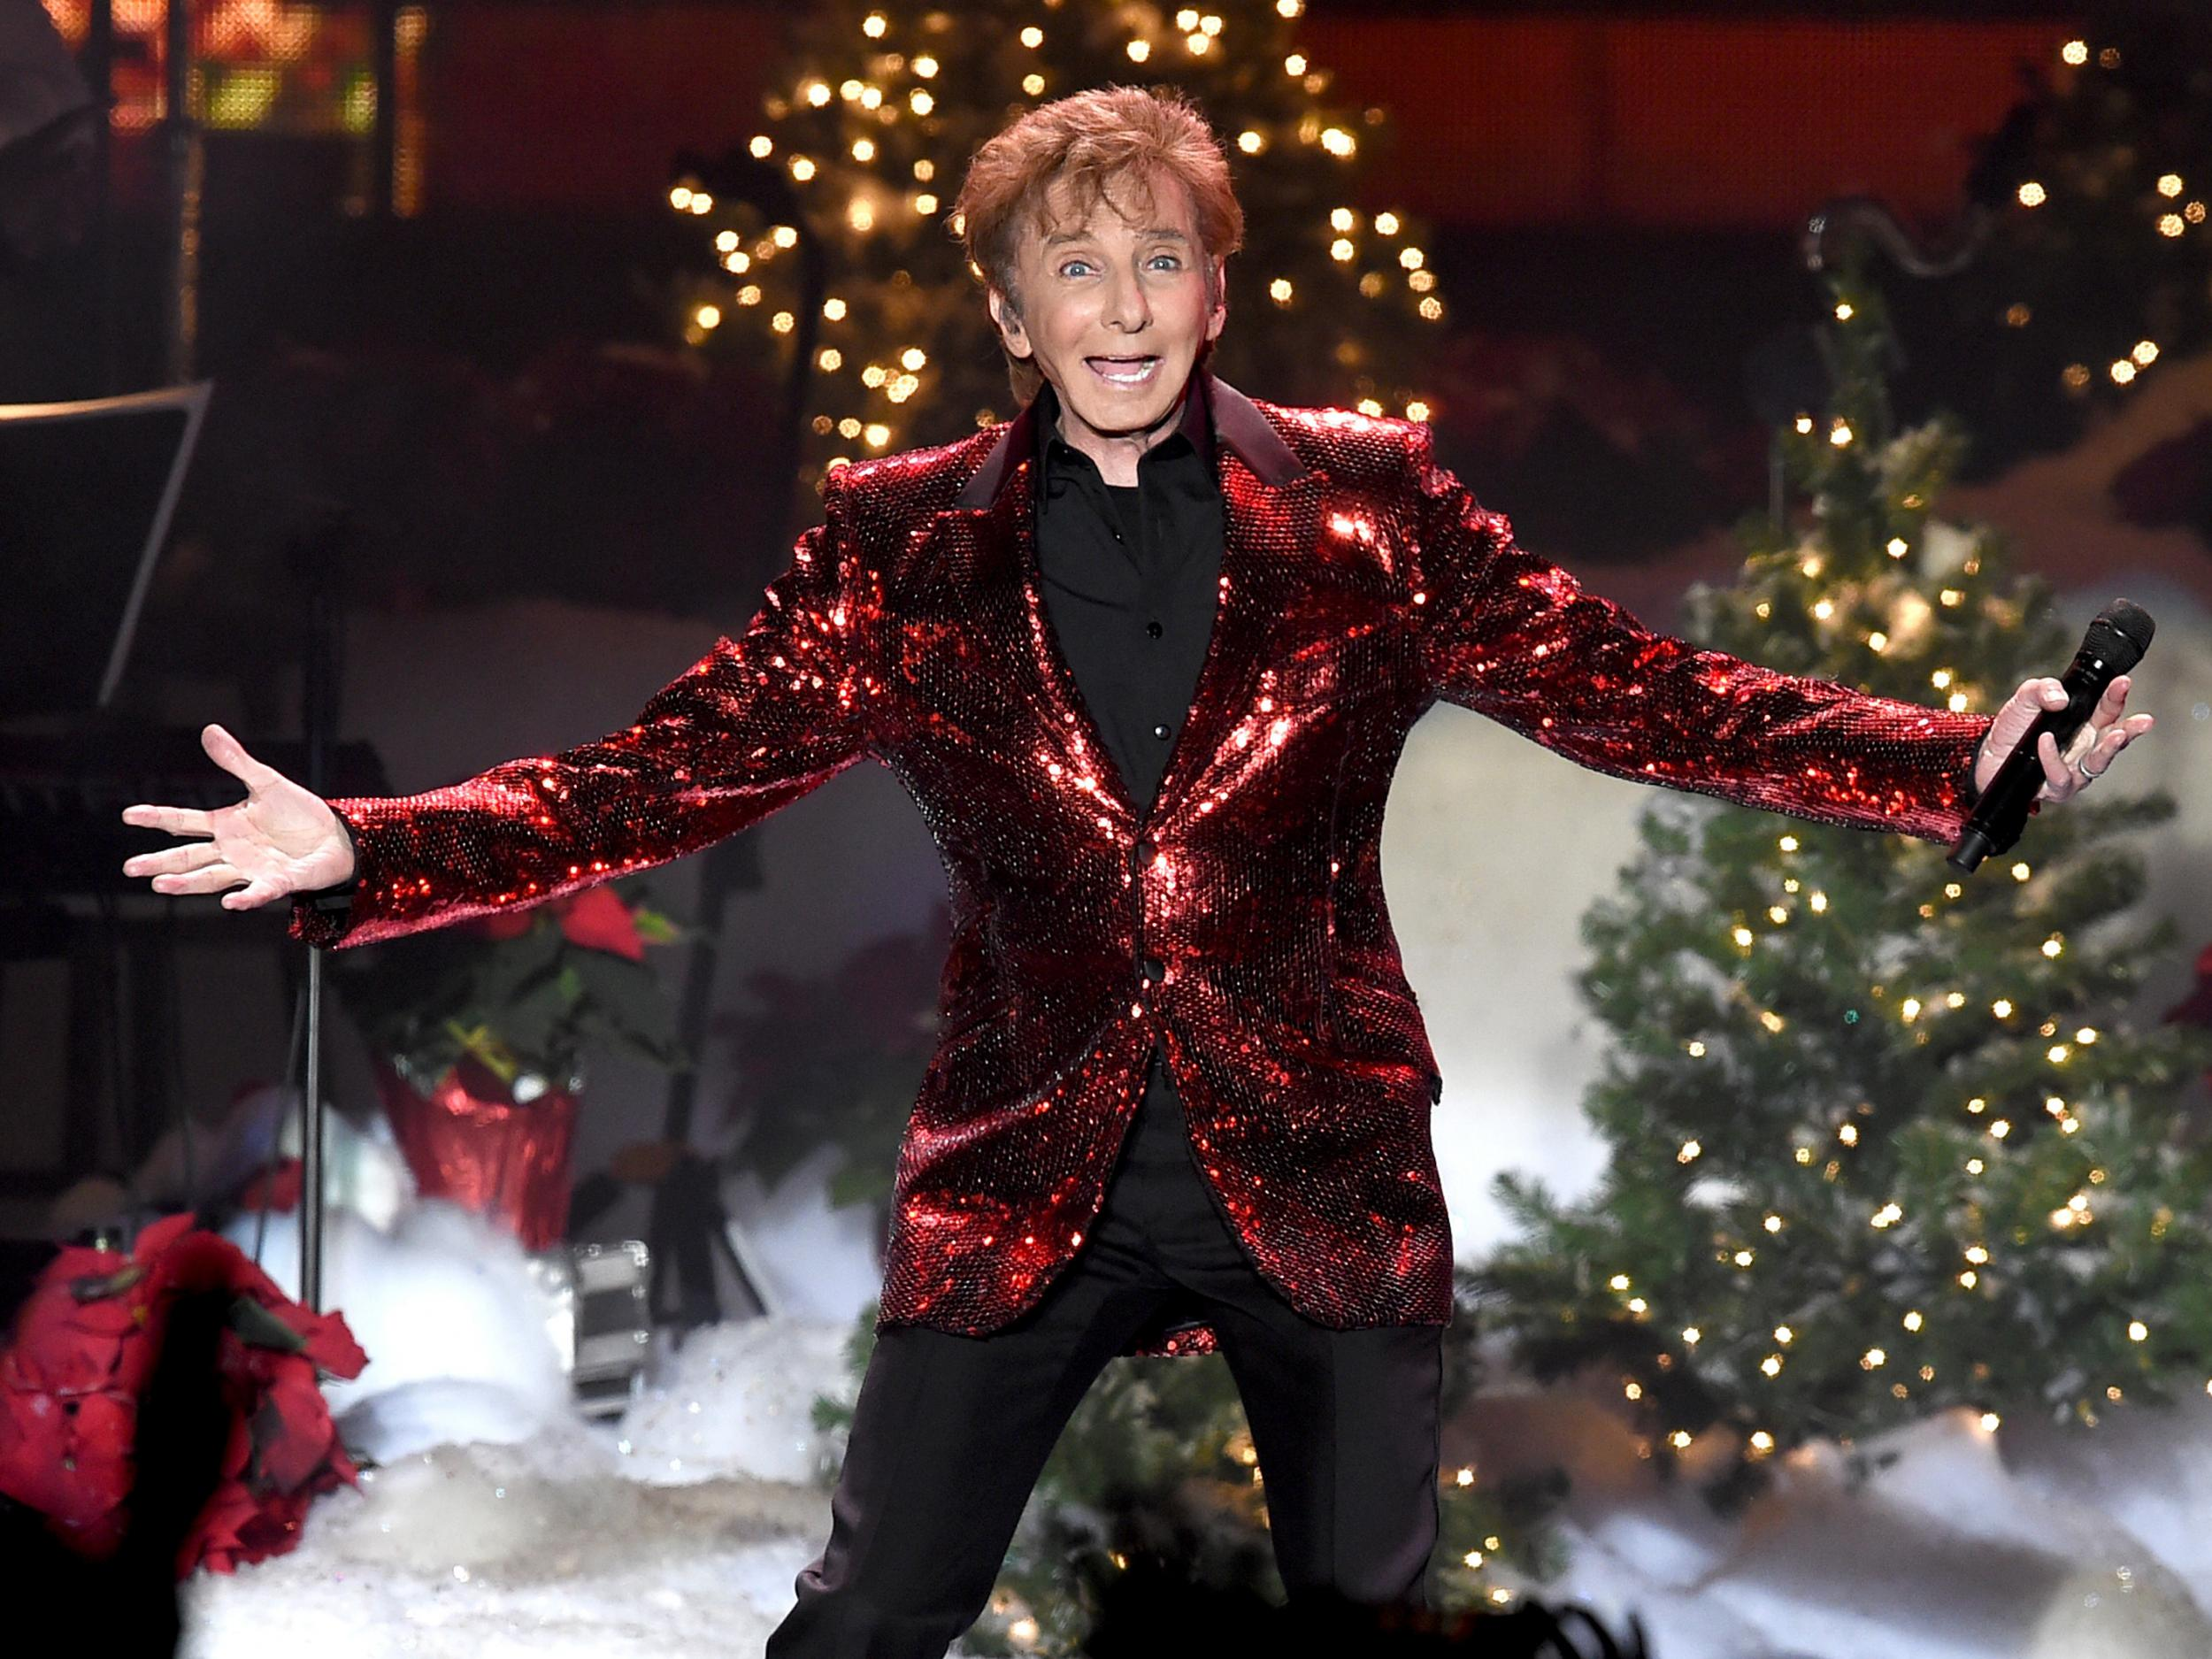 Barry Manilow Tour Dates 2020 Barry Manilow on running for president: 'Everybody will be happy